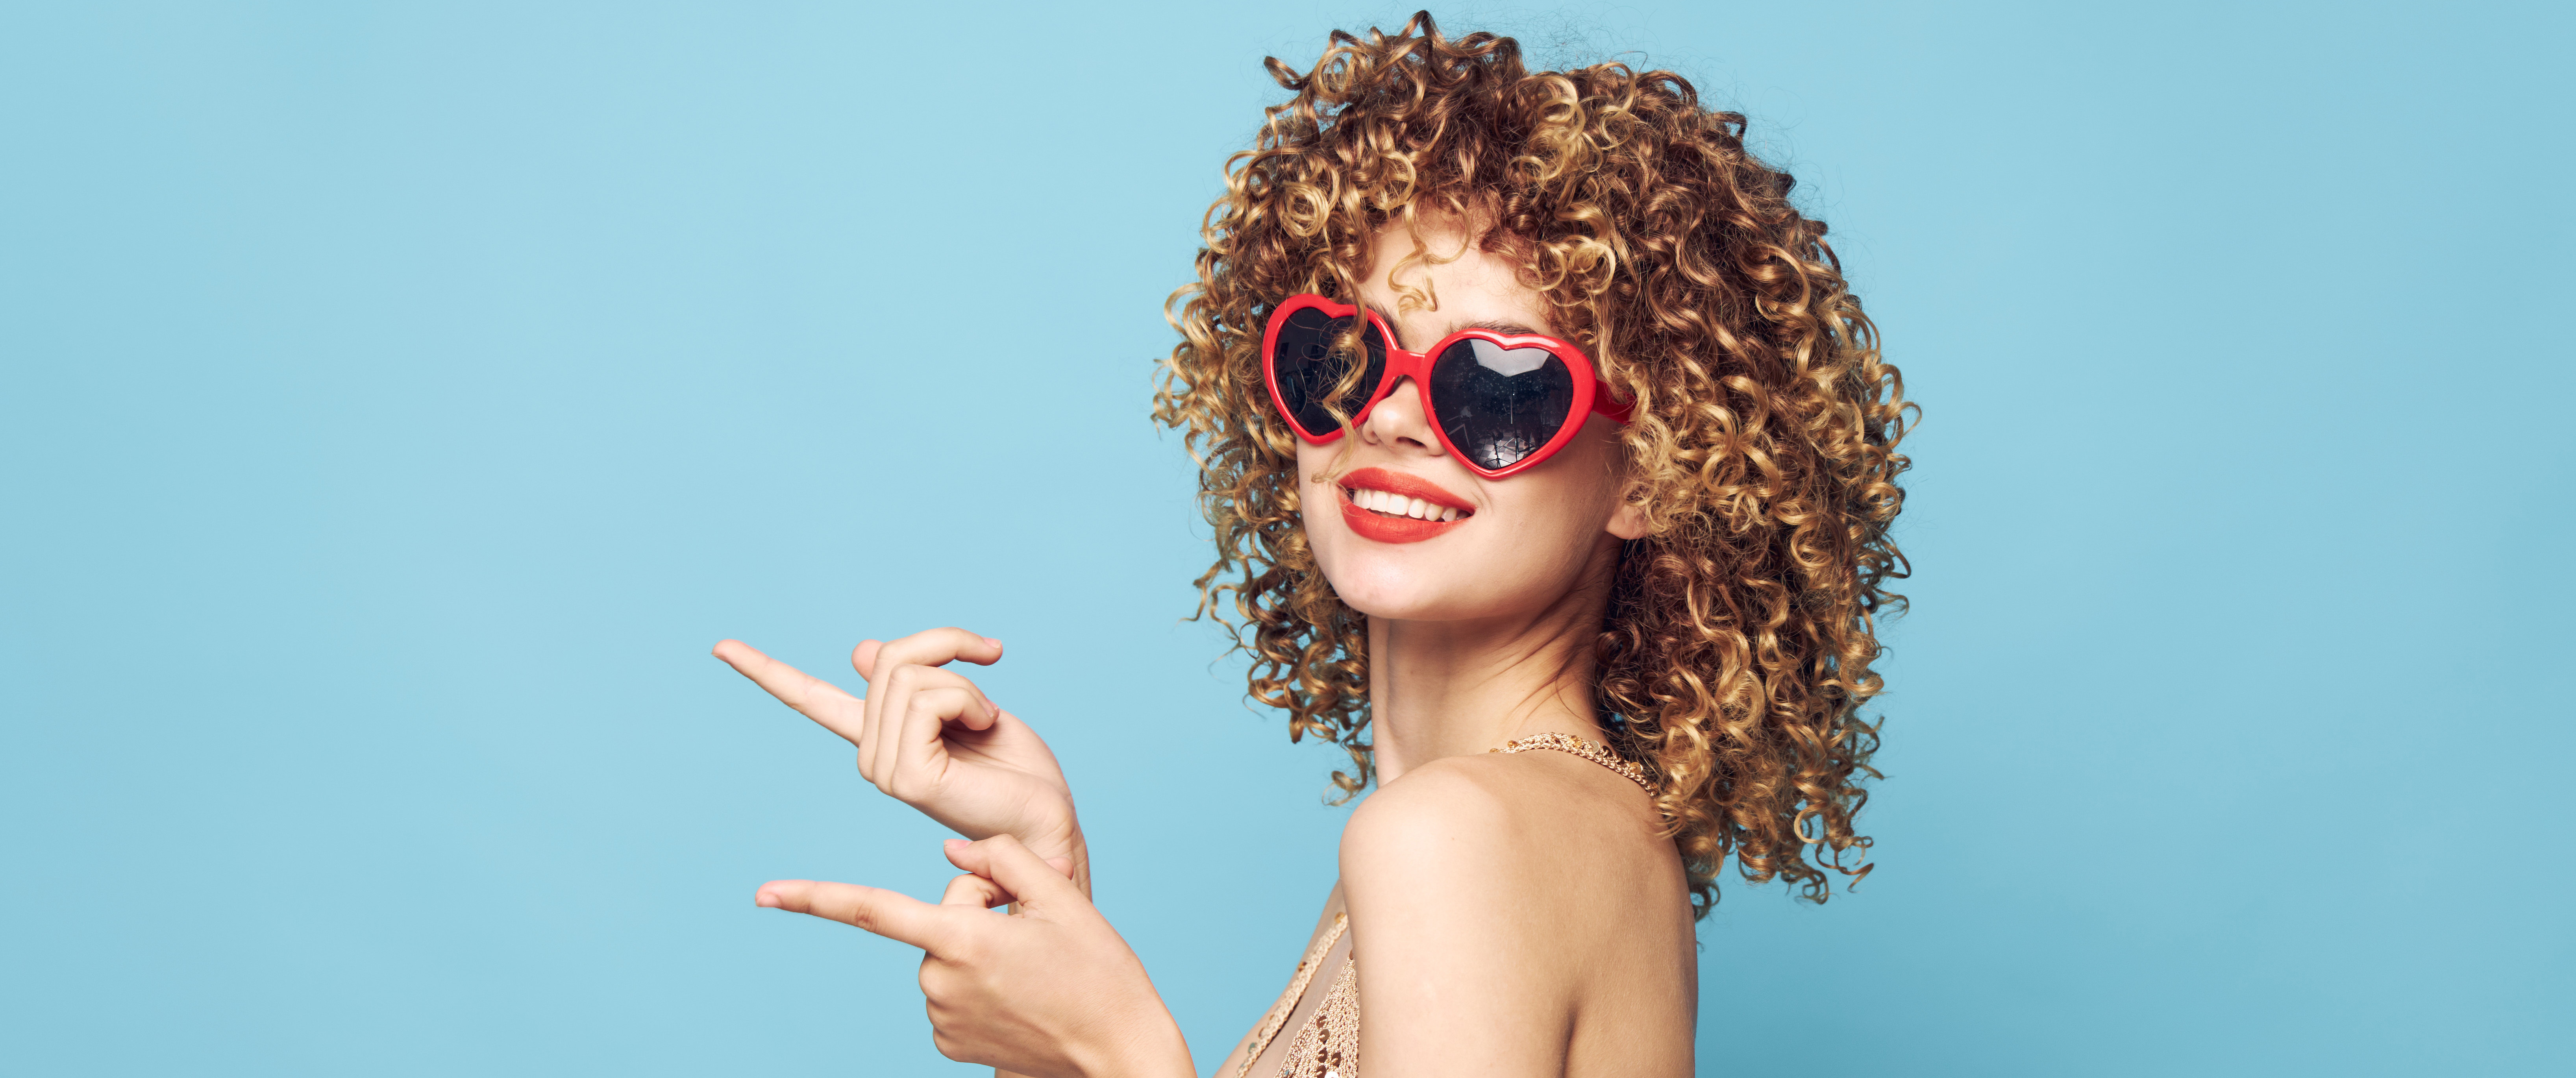 Lunette Hero Image of a Woman With Sunglasses